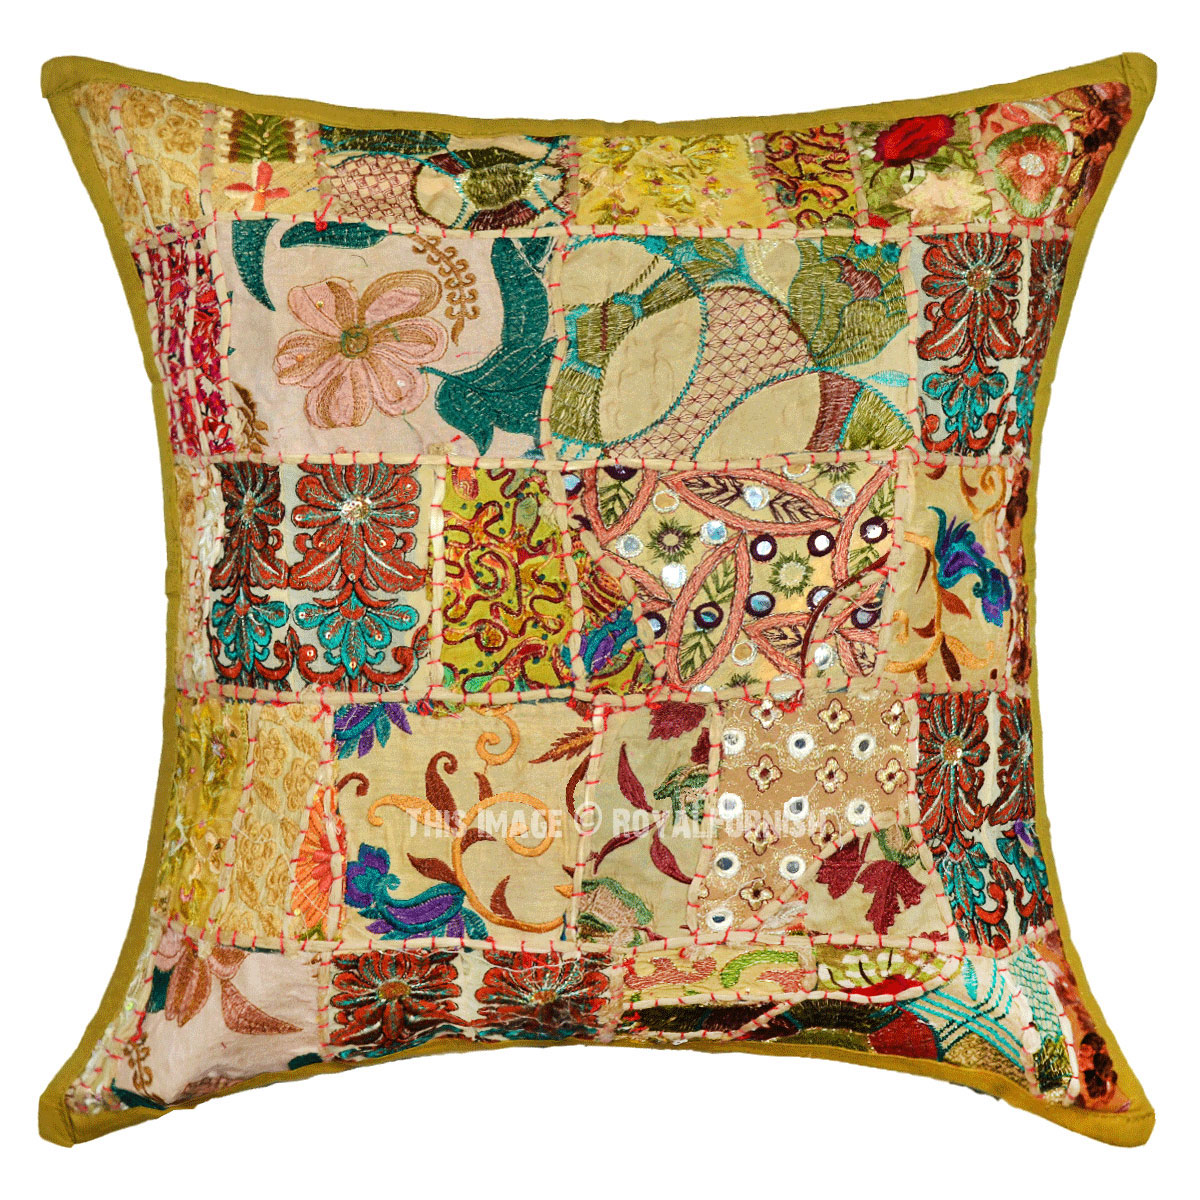 20 Square Throw Pillow Covers : 20X20 Green Handmade Boho Accent Square Throw Pillow Cover - RoyalFurnish.com